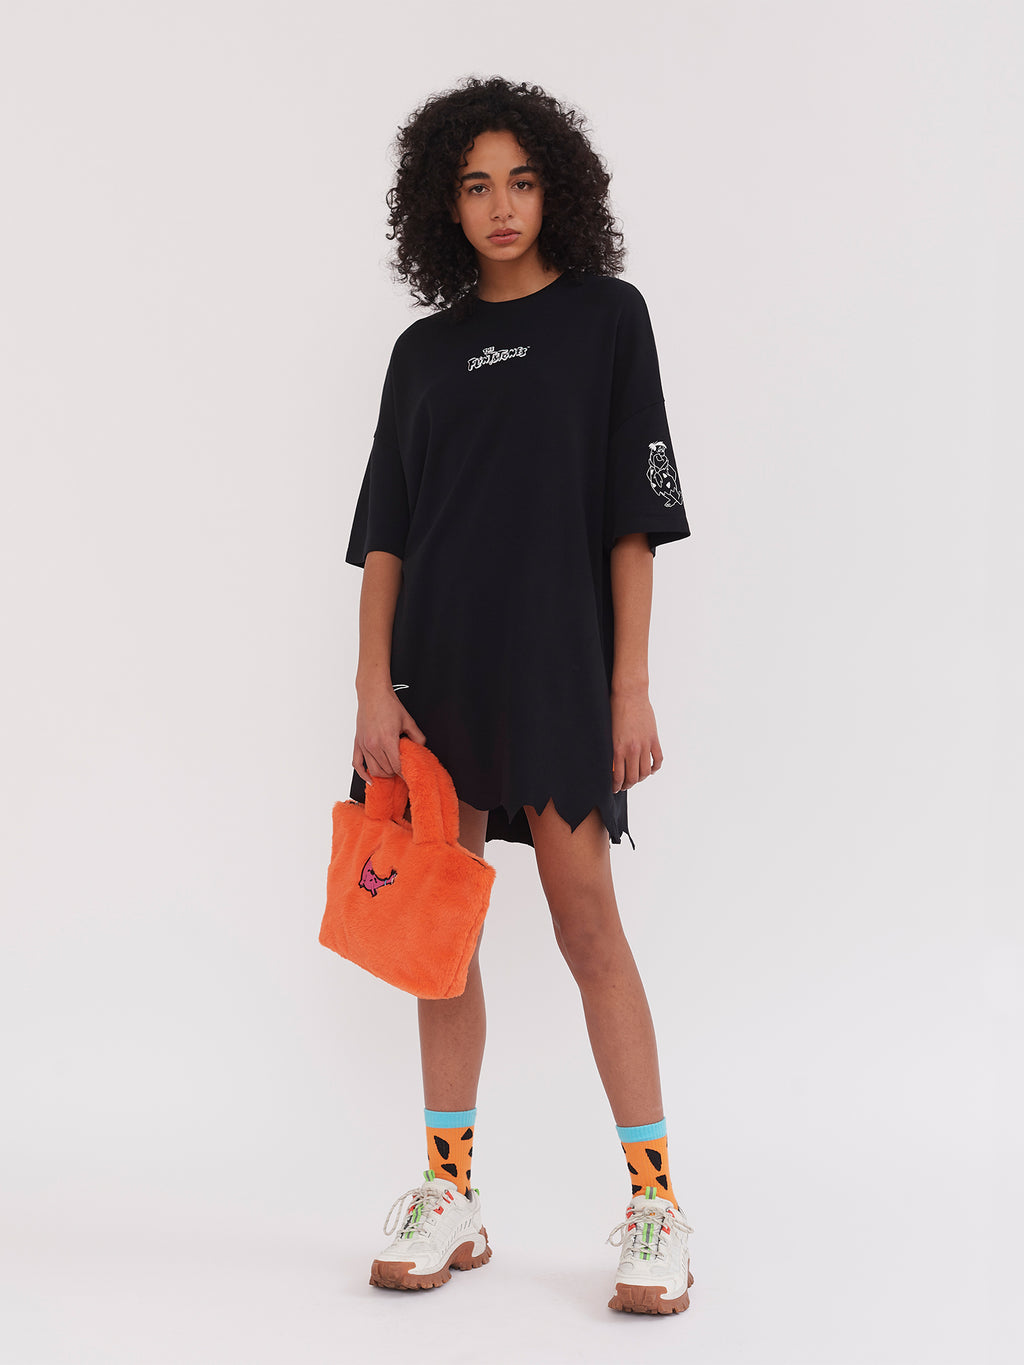 Lazy Oaf x The Flintstones Torn Hem T-Shirt Dress